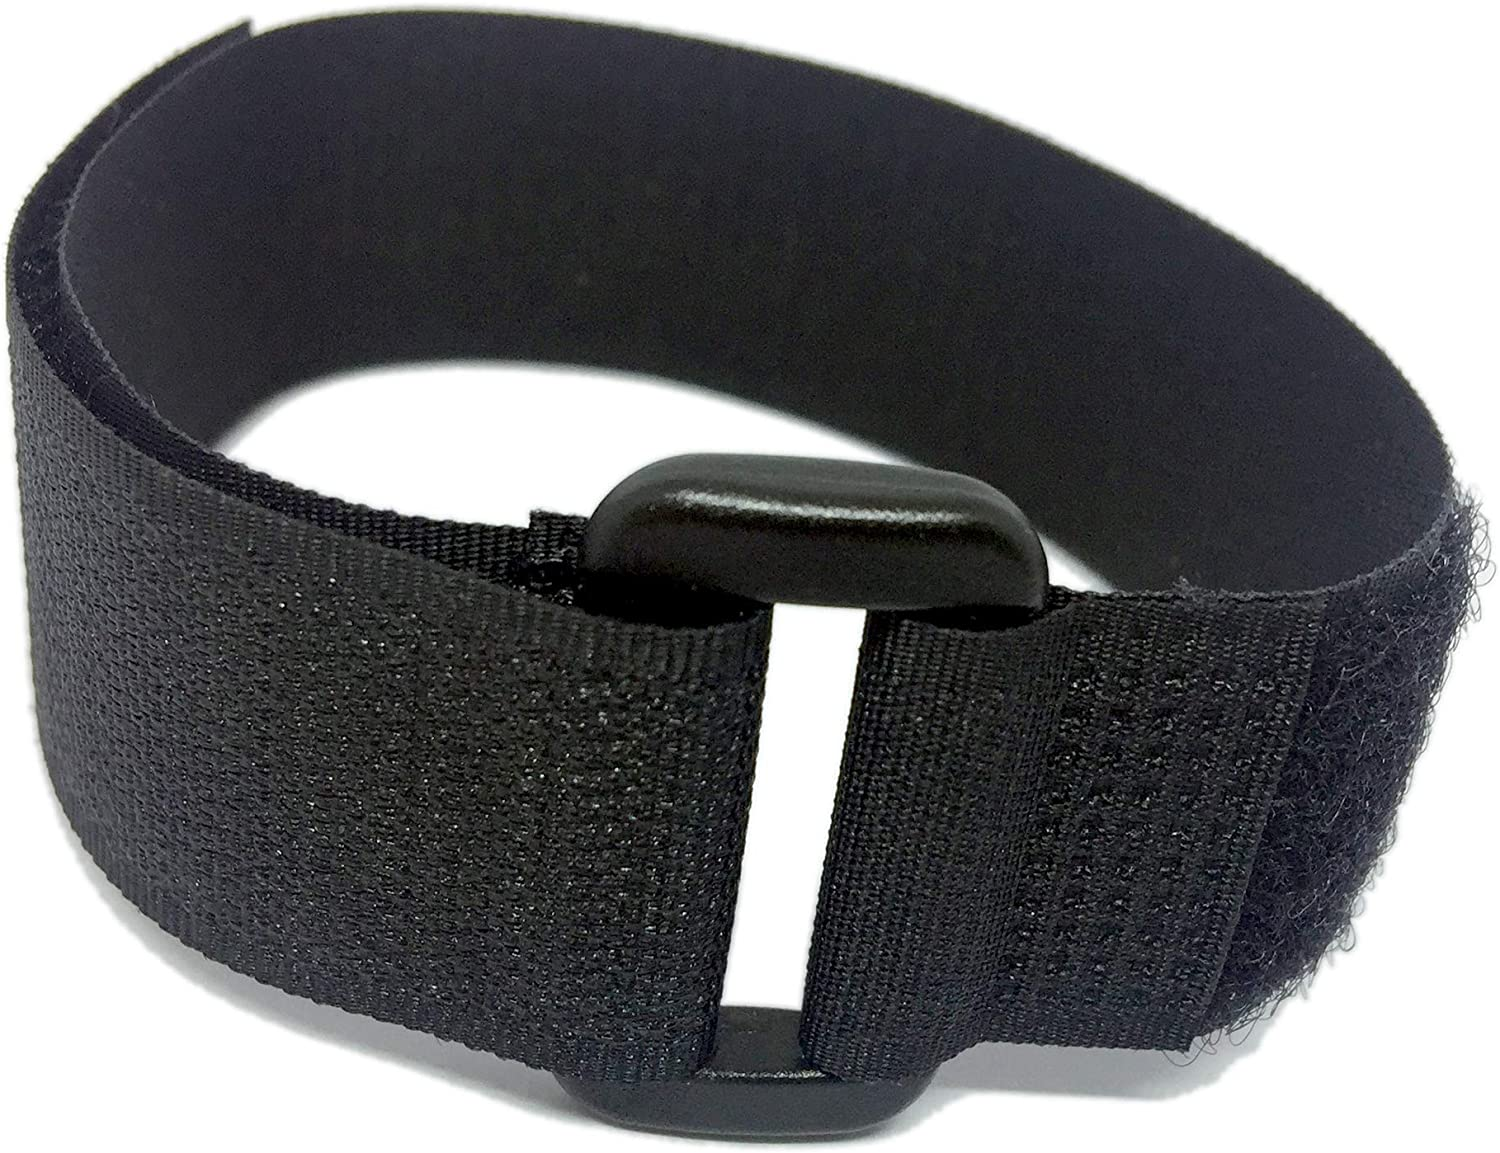 Alfatex® Brand supplied by Velcro companies ring straps Cable Ties with buckle